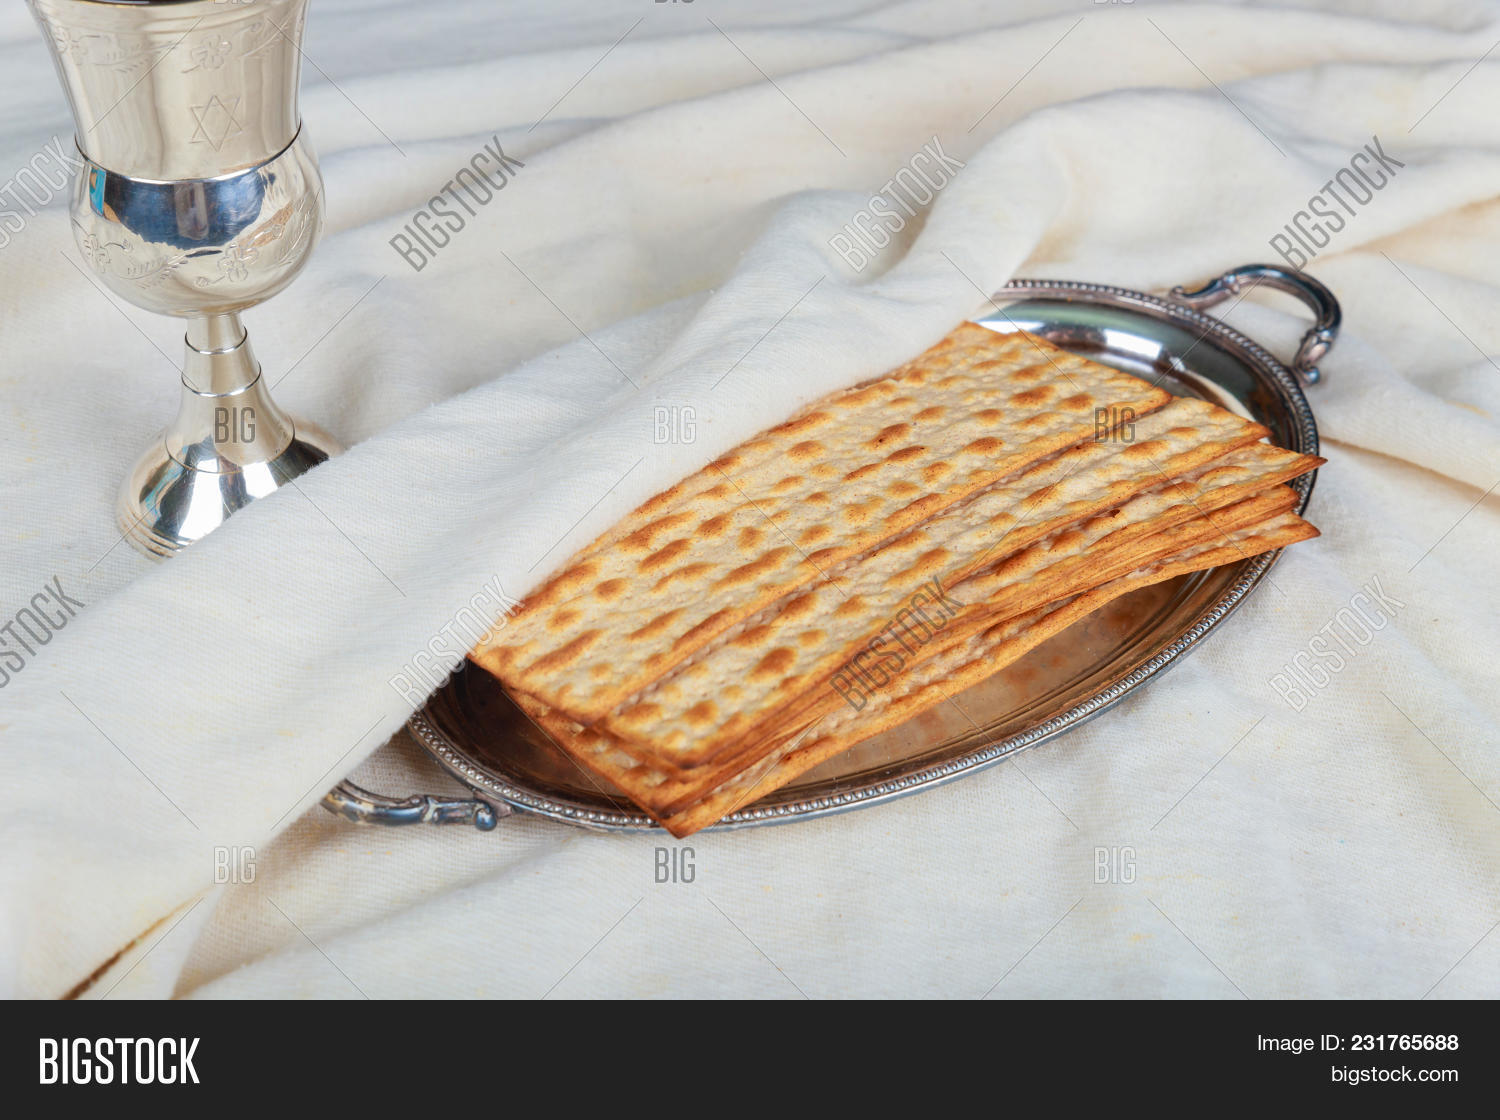 Pesach Passover Image Photo Free Trial Bigstock